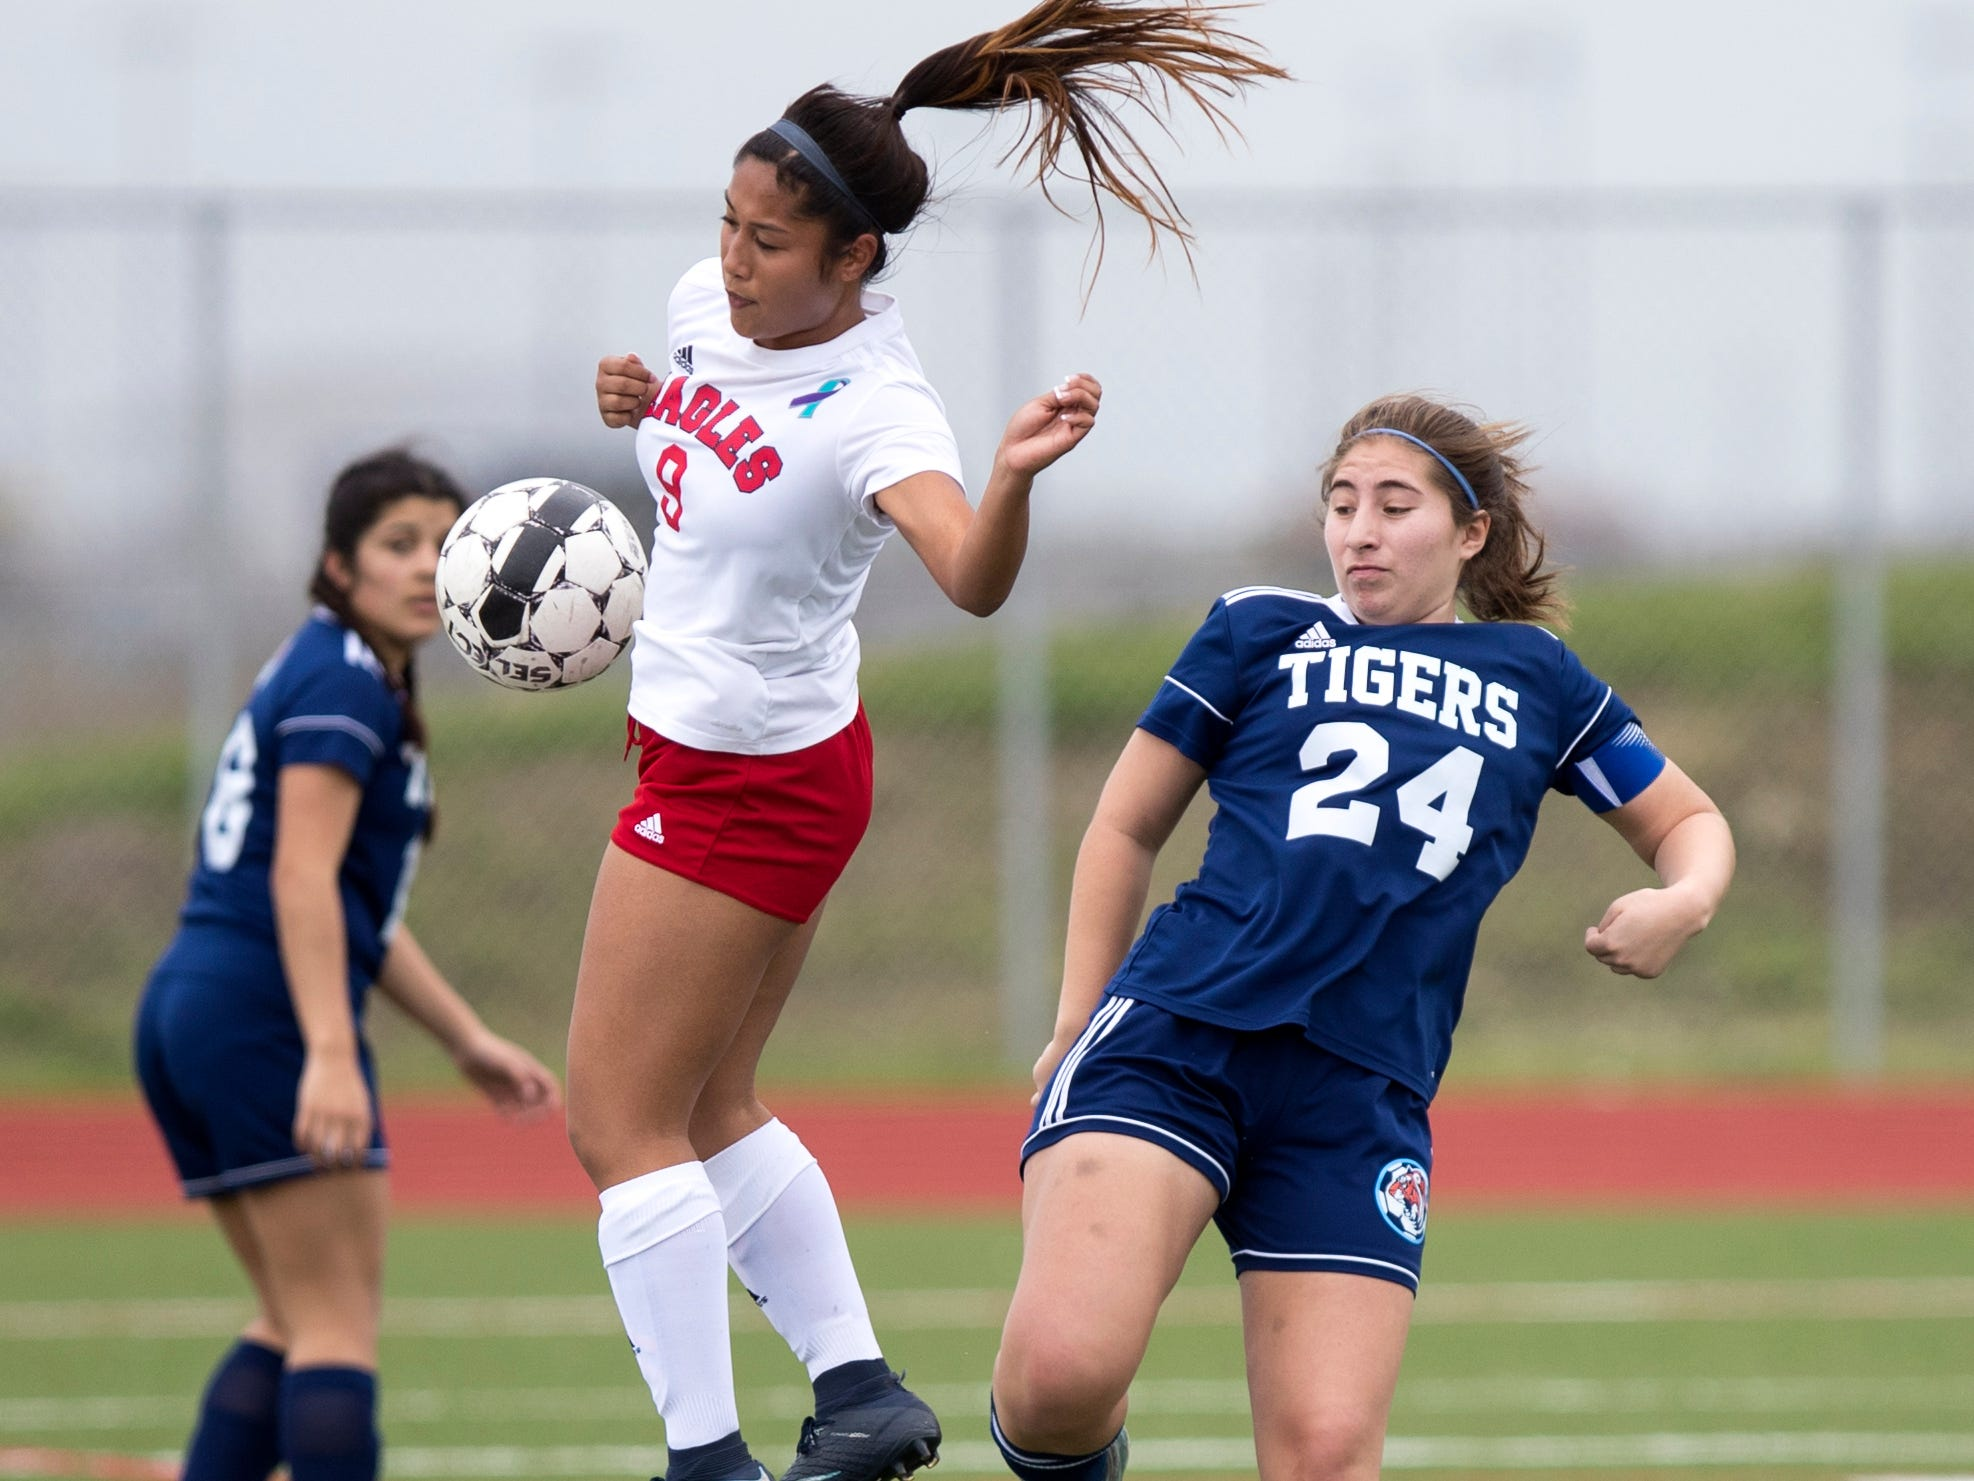 Veterans Memorial's Maricris Albarda (9) and Carroll's Nicole Escamilla (24) go after the ball in the Mira's Soccer Tournament at Veterans Memorial High School on Friday, January 11, 2019. The Eagles won the game 5-0.